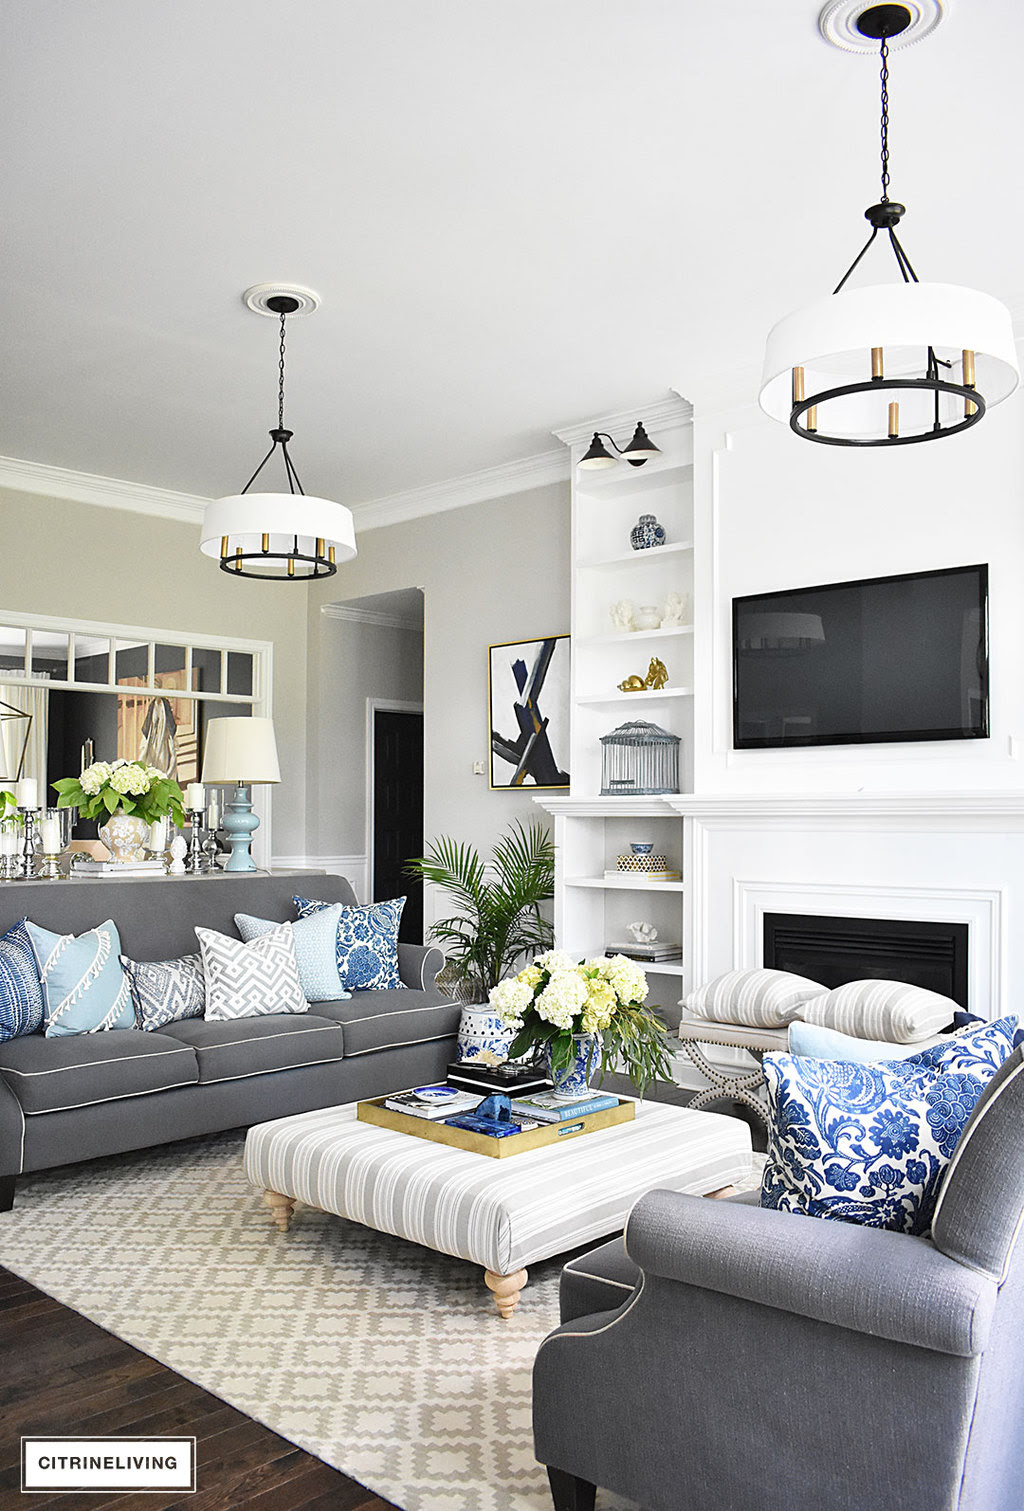 20+ Fresh Ideas for Decorating with Blue and White ...